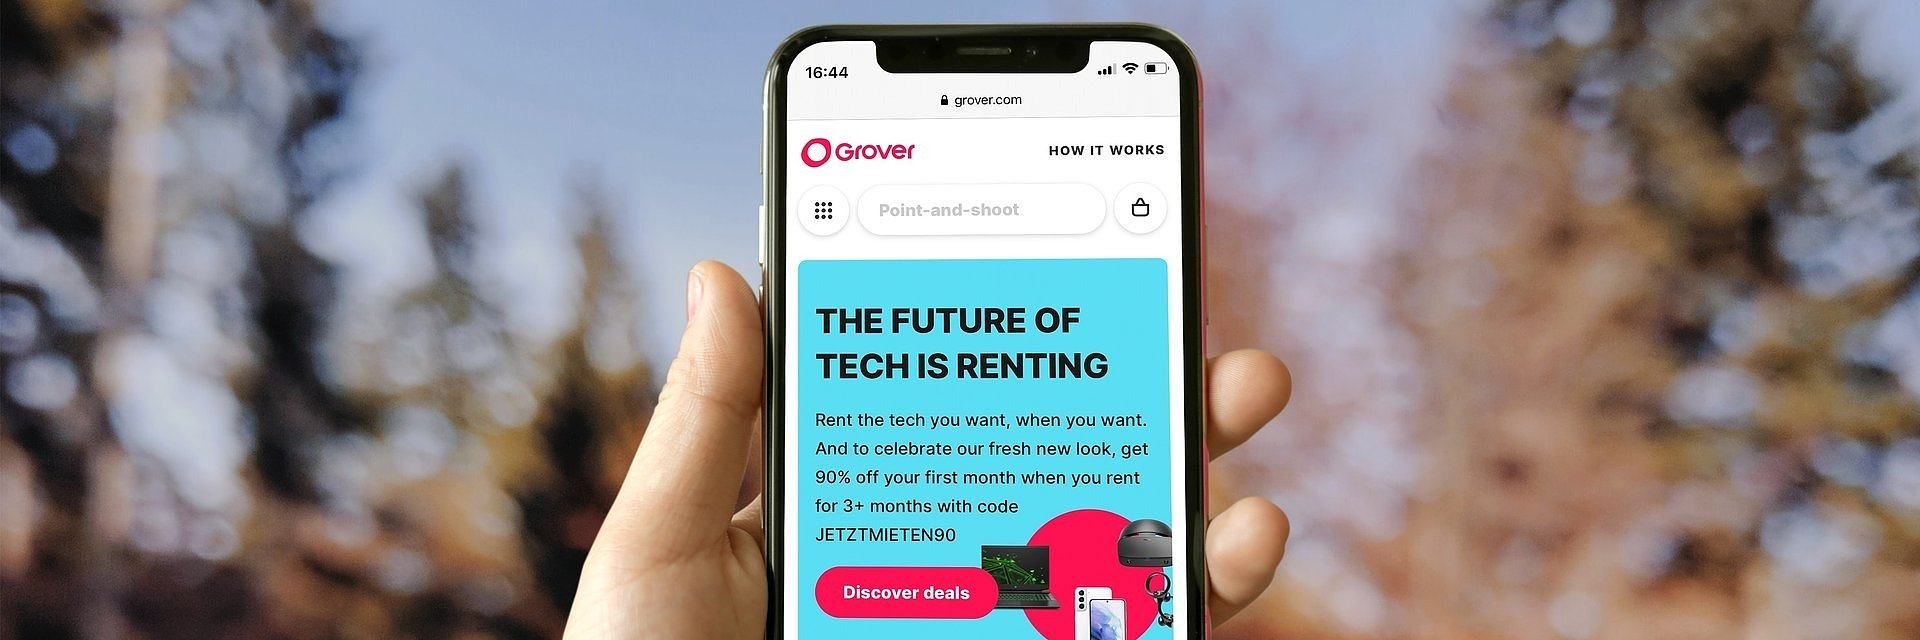 Grover: How This Website For Renting Technology Gadgets Works - Techidence